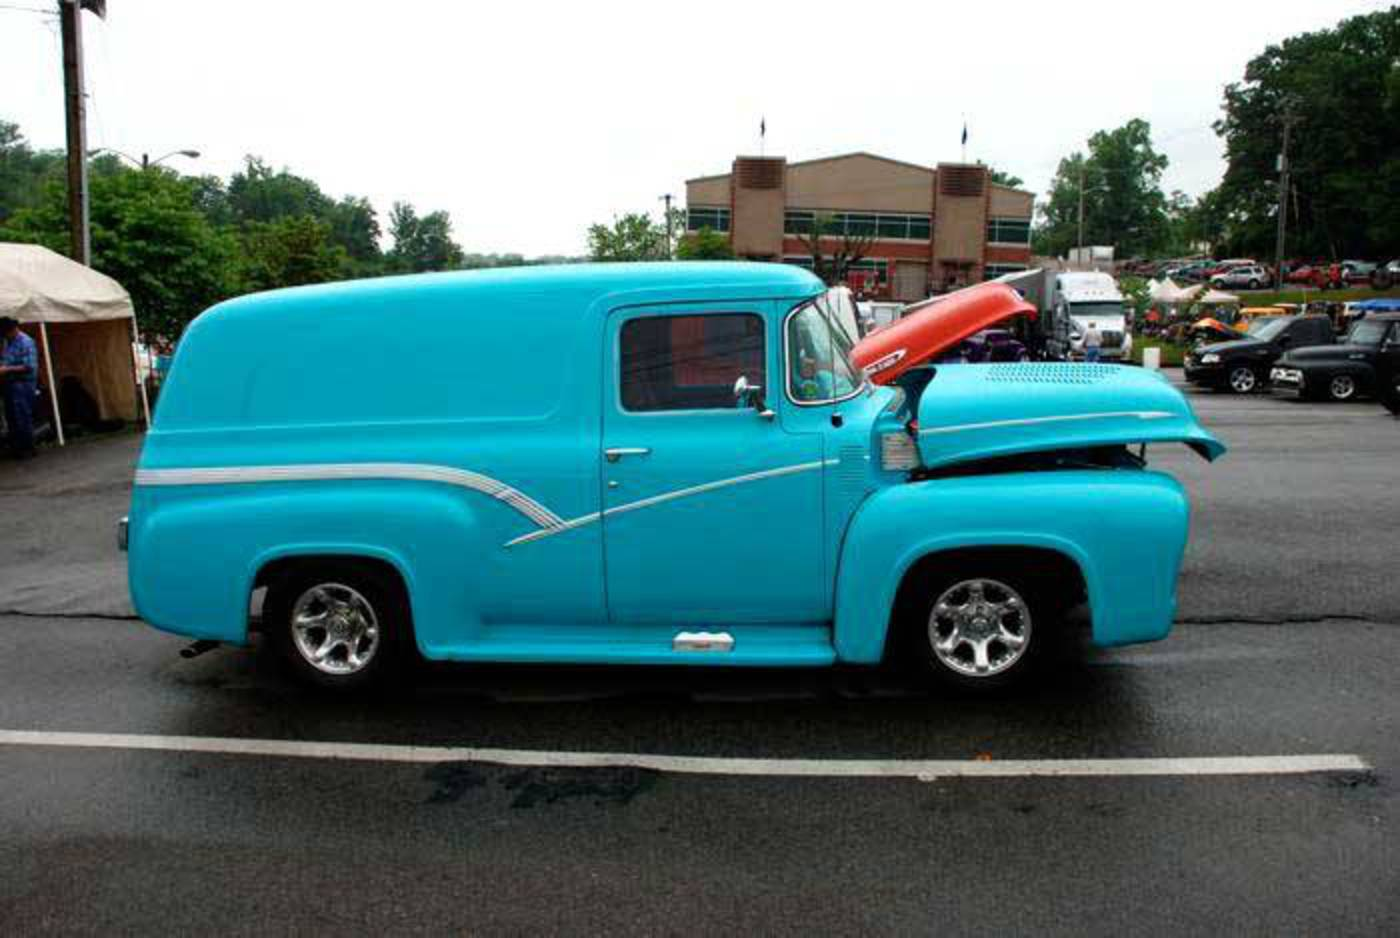 Topworldauto Photos Of Ford F 100 Panel Photo Galleries 1956 F100 Wiring Diagram Truck 2009 Supernationals